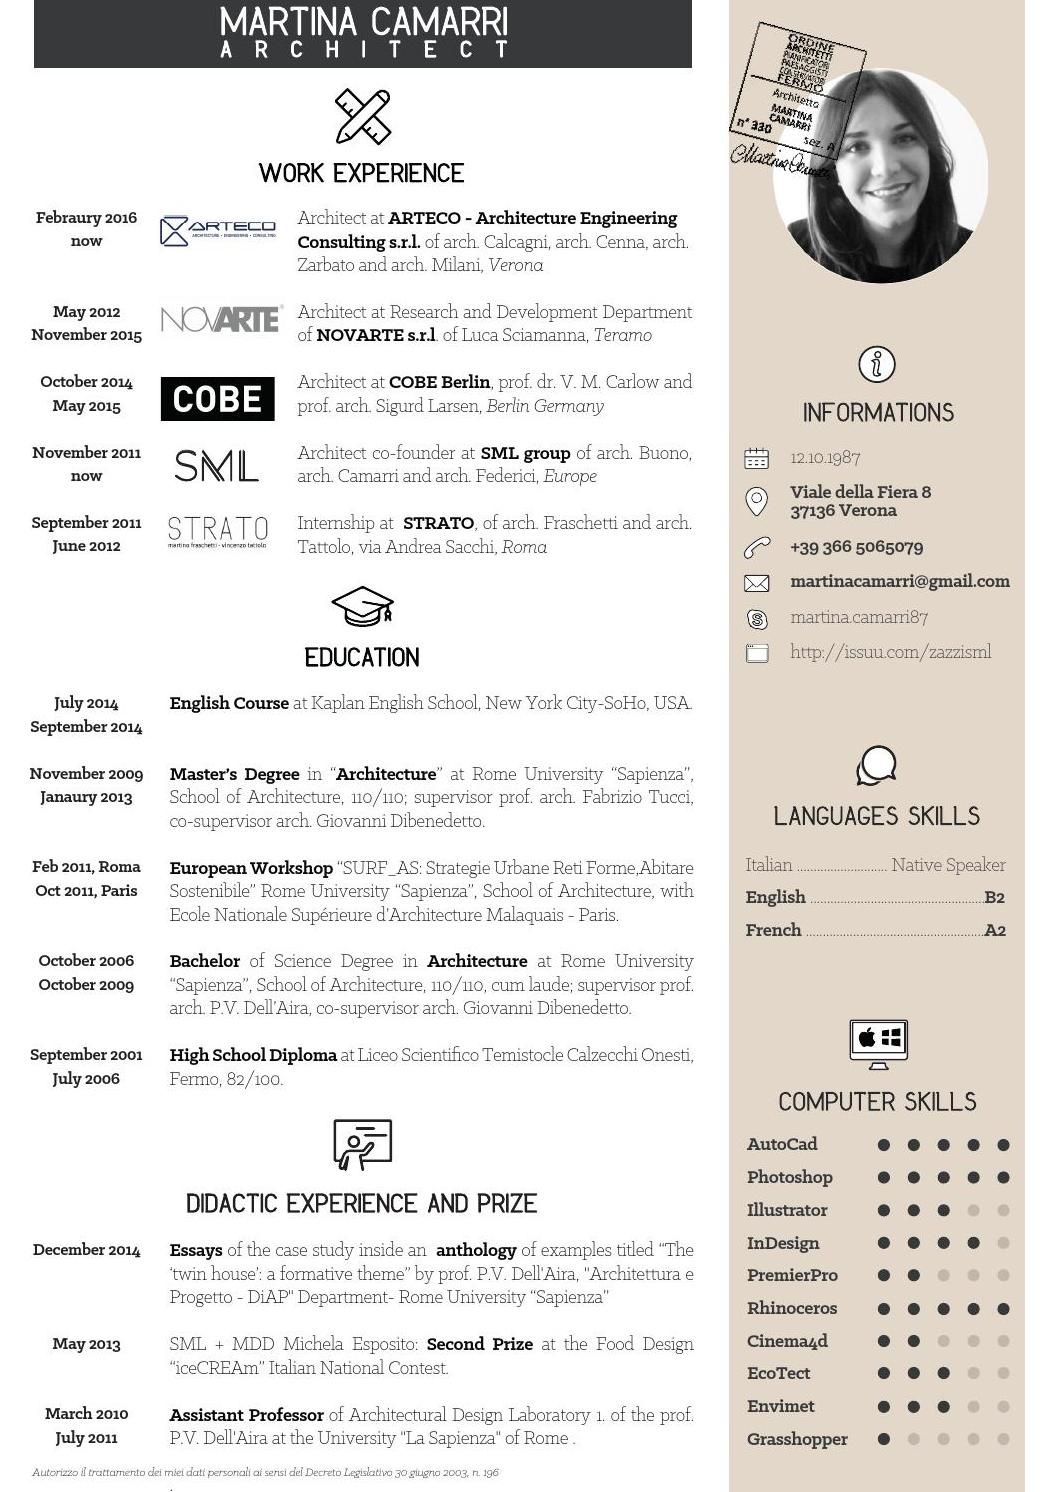 gallery of the top architecture résumé cv designs 7 gaia clippedonissuu from cv martina camarri architetto